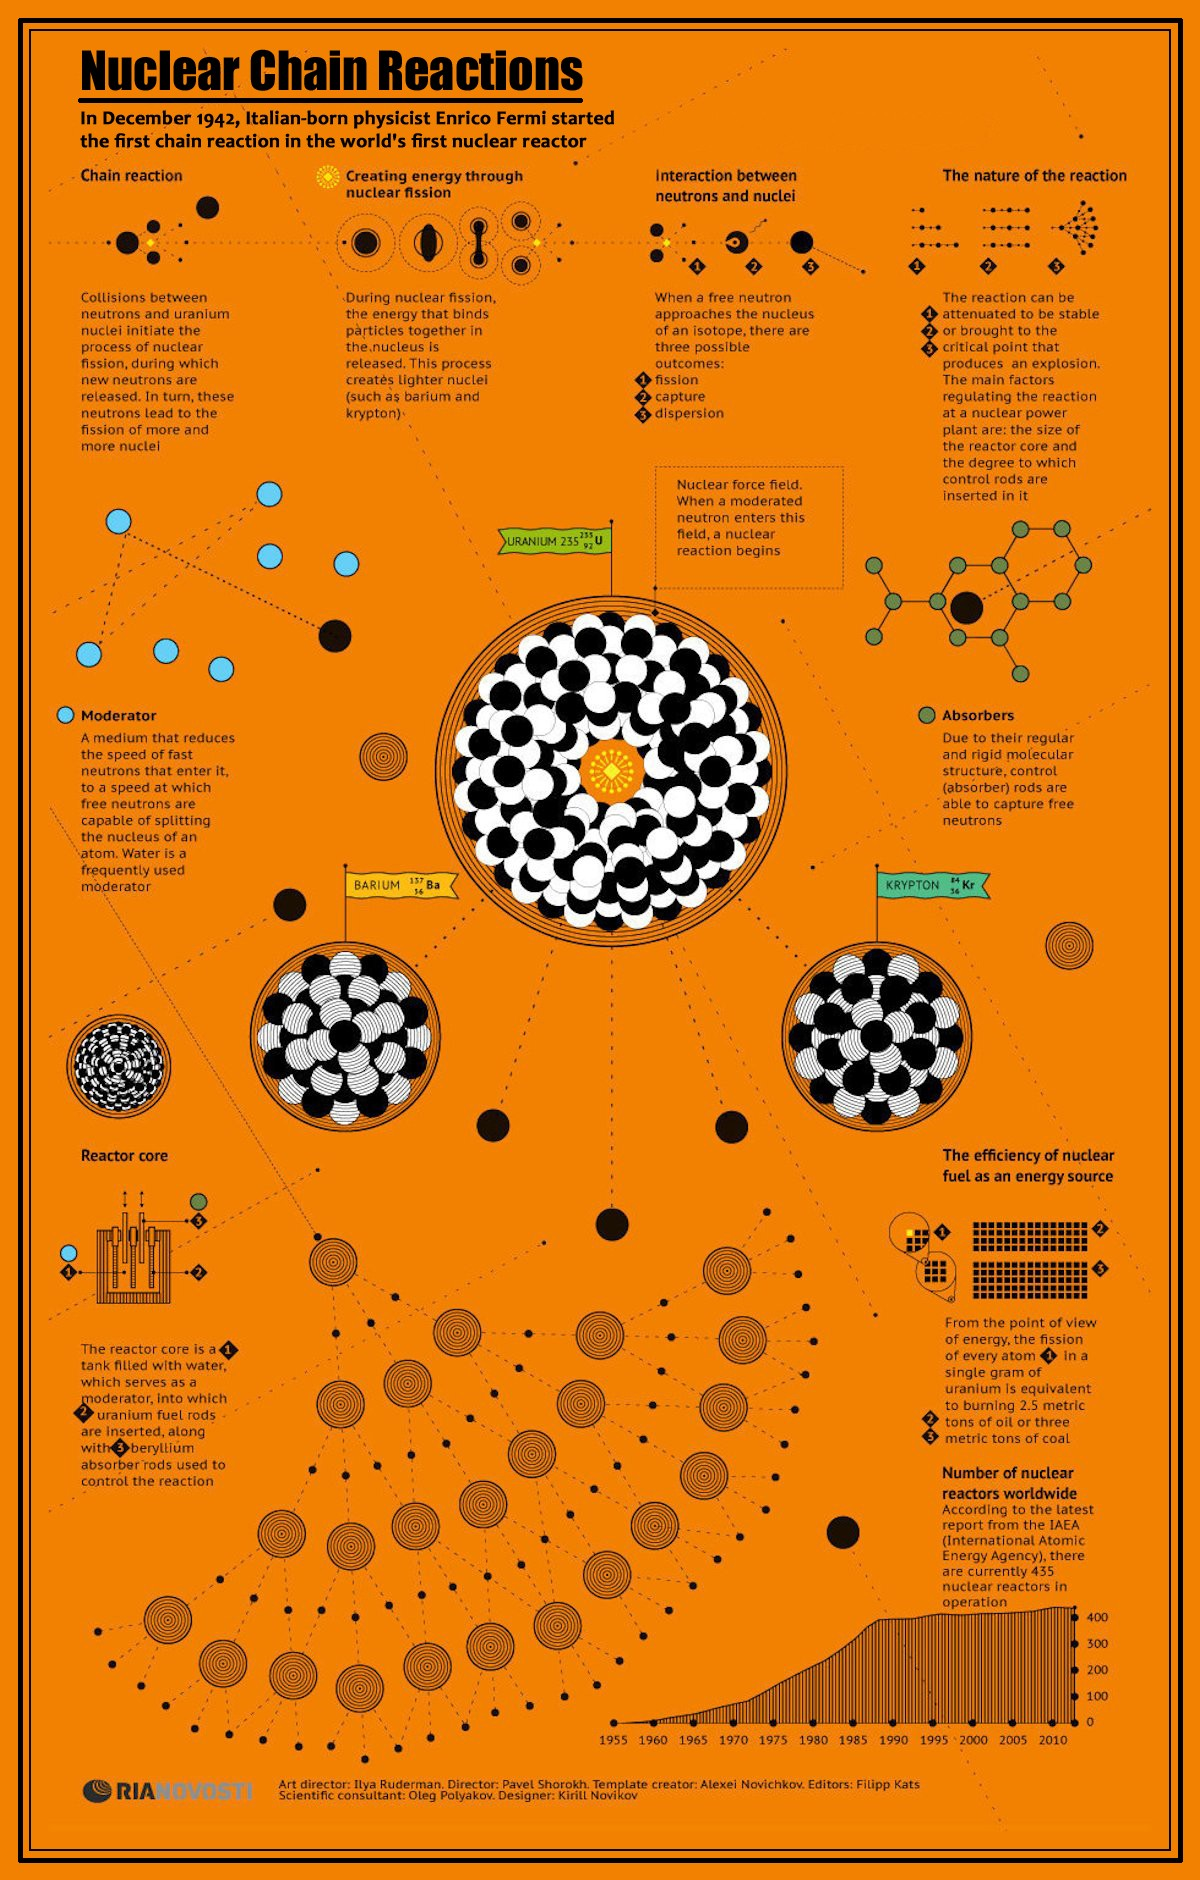 00 RIA-Novosti Infographics. Nuclear Chain Reactions. 2012